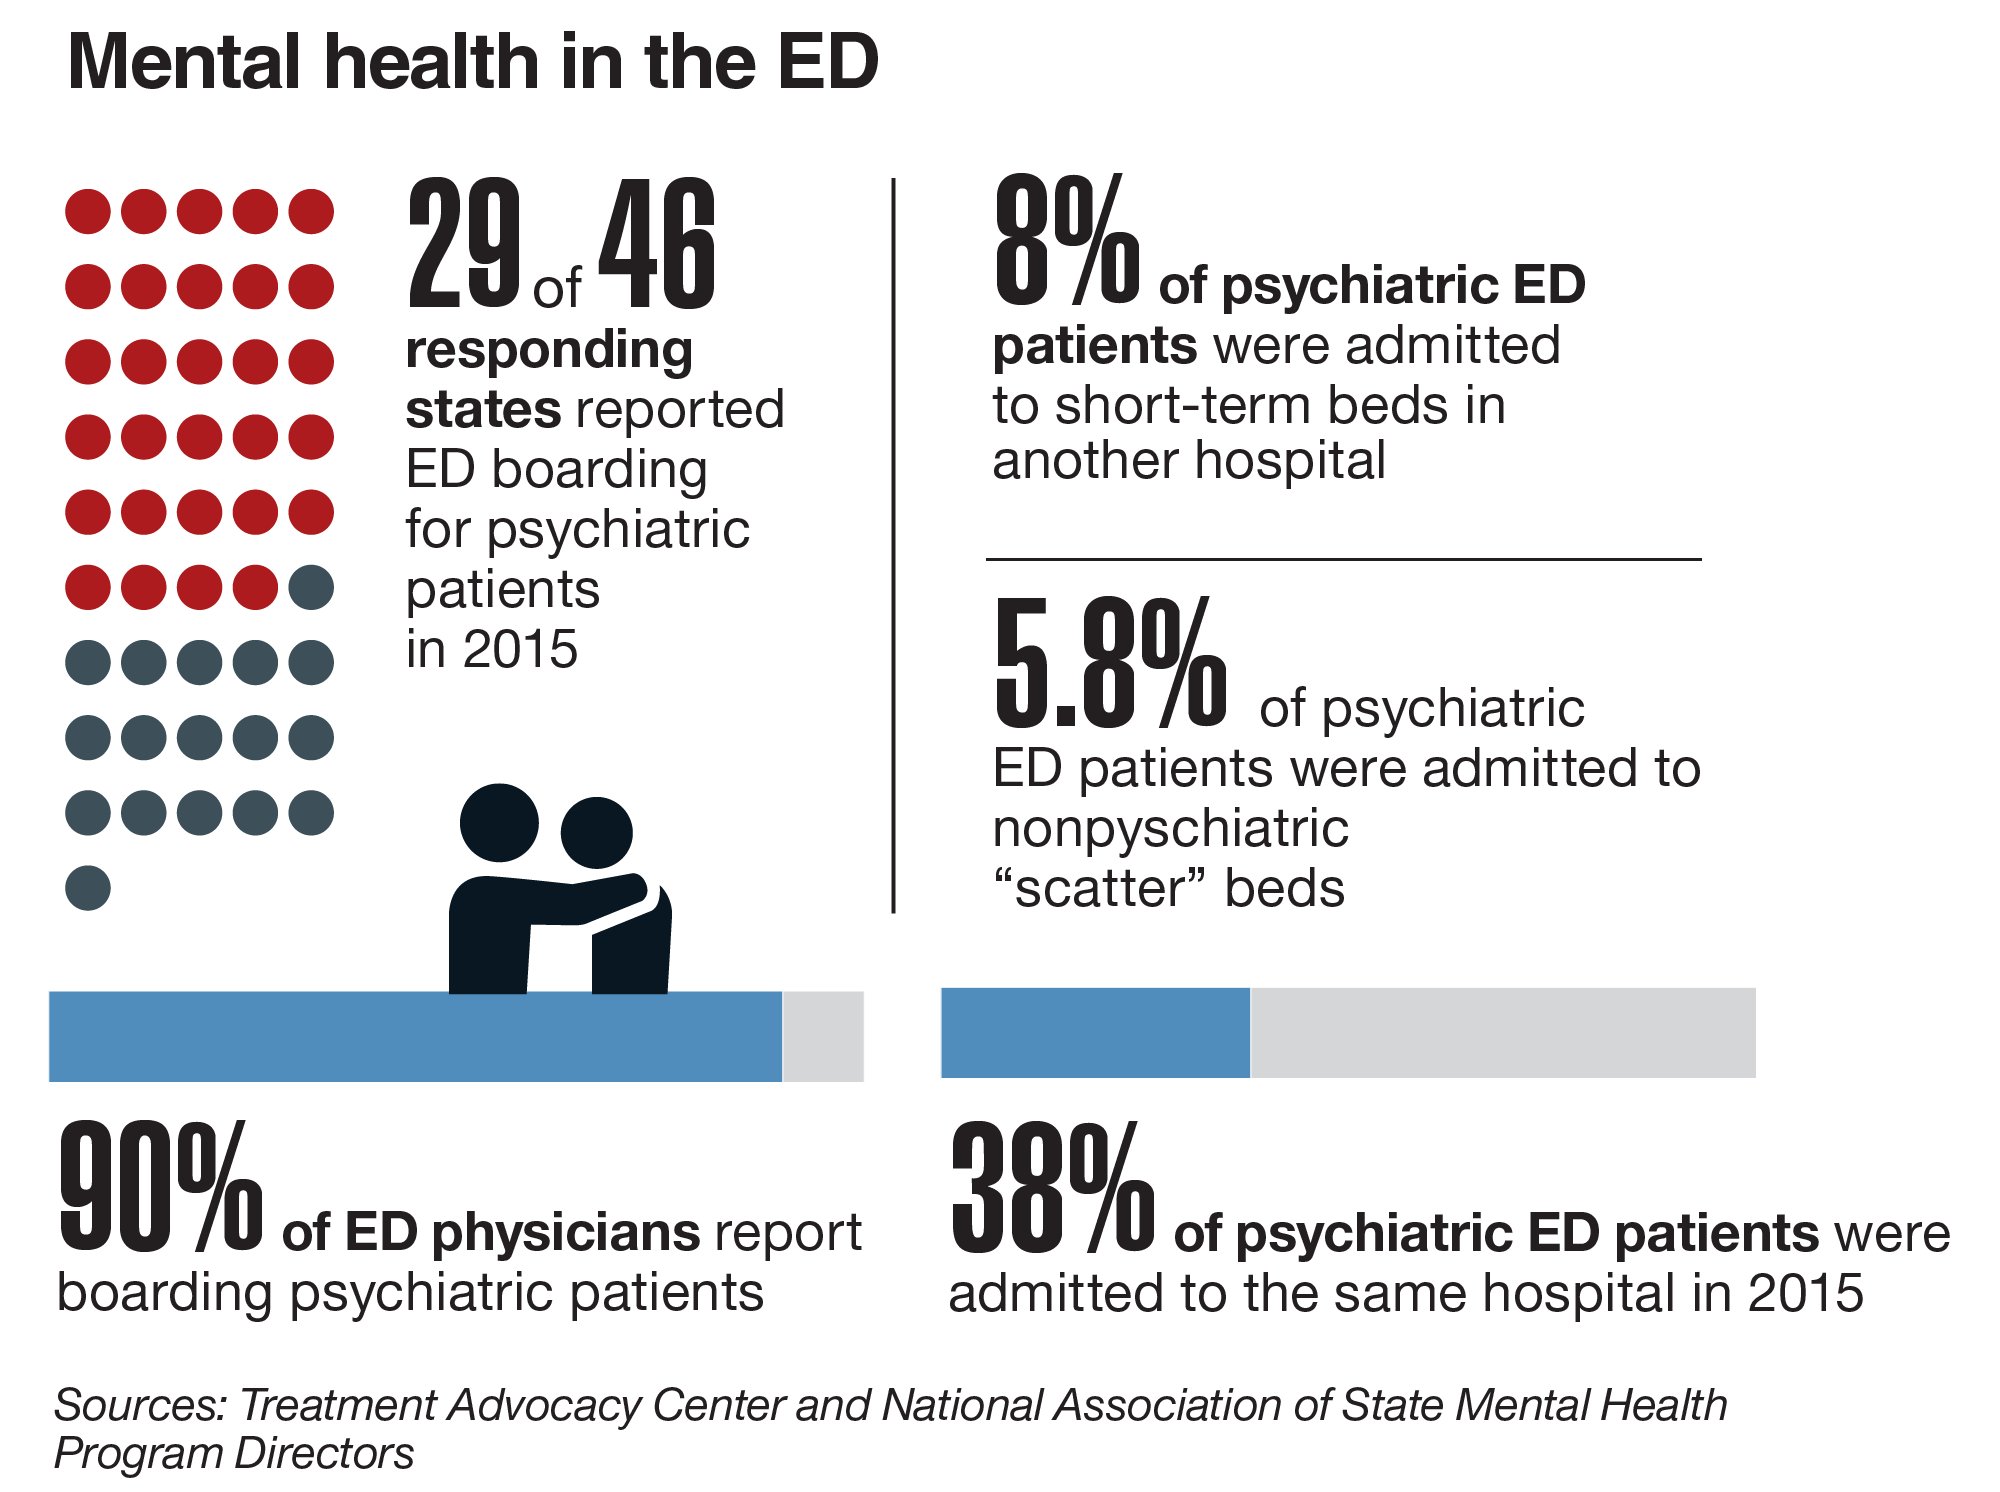 Mental health in the ED